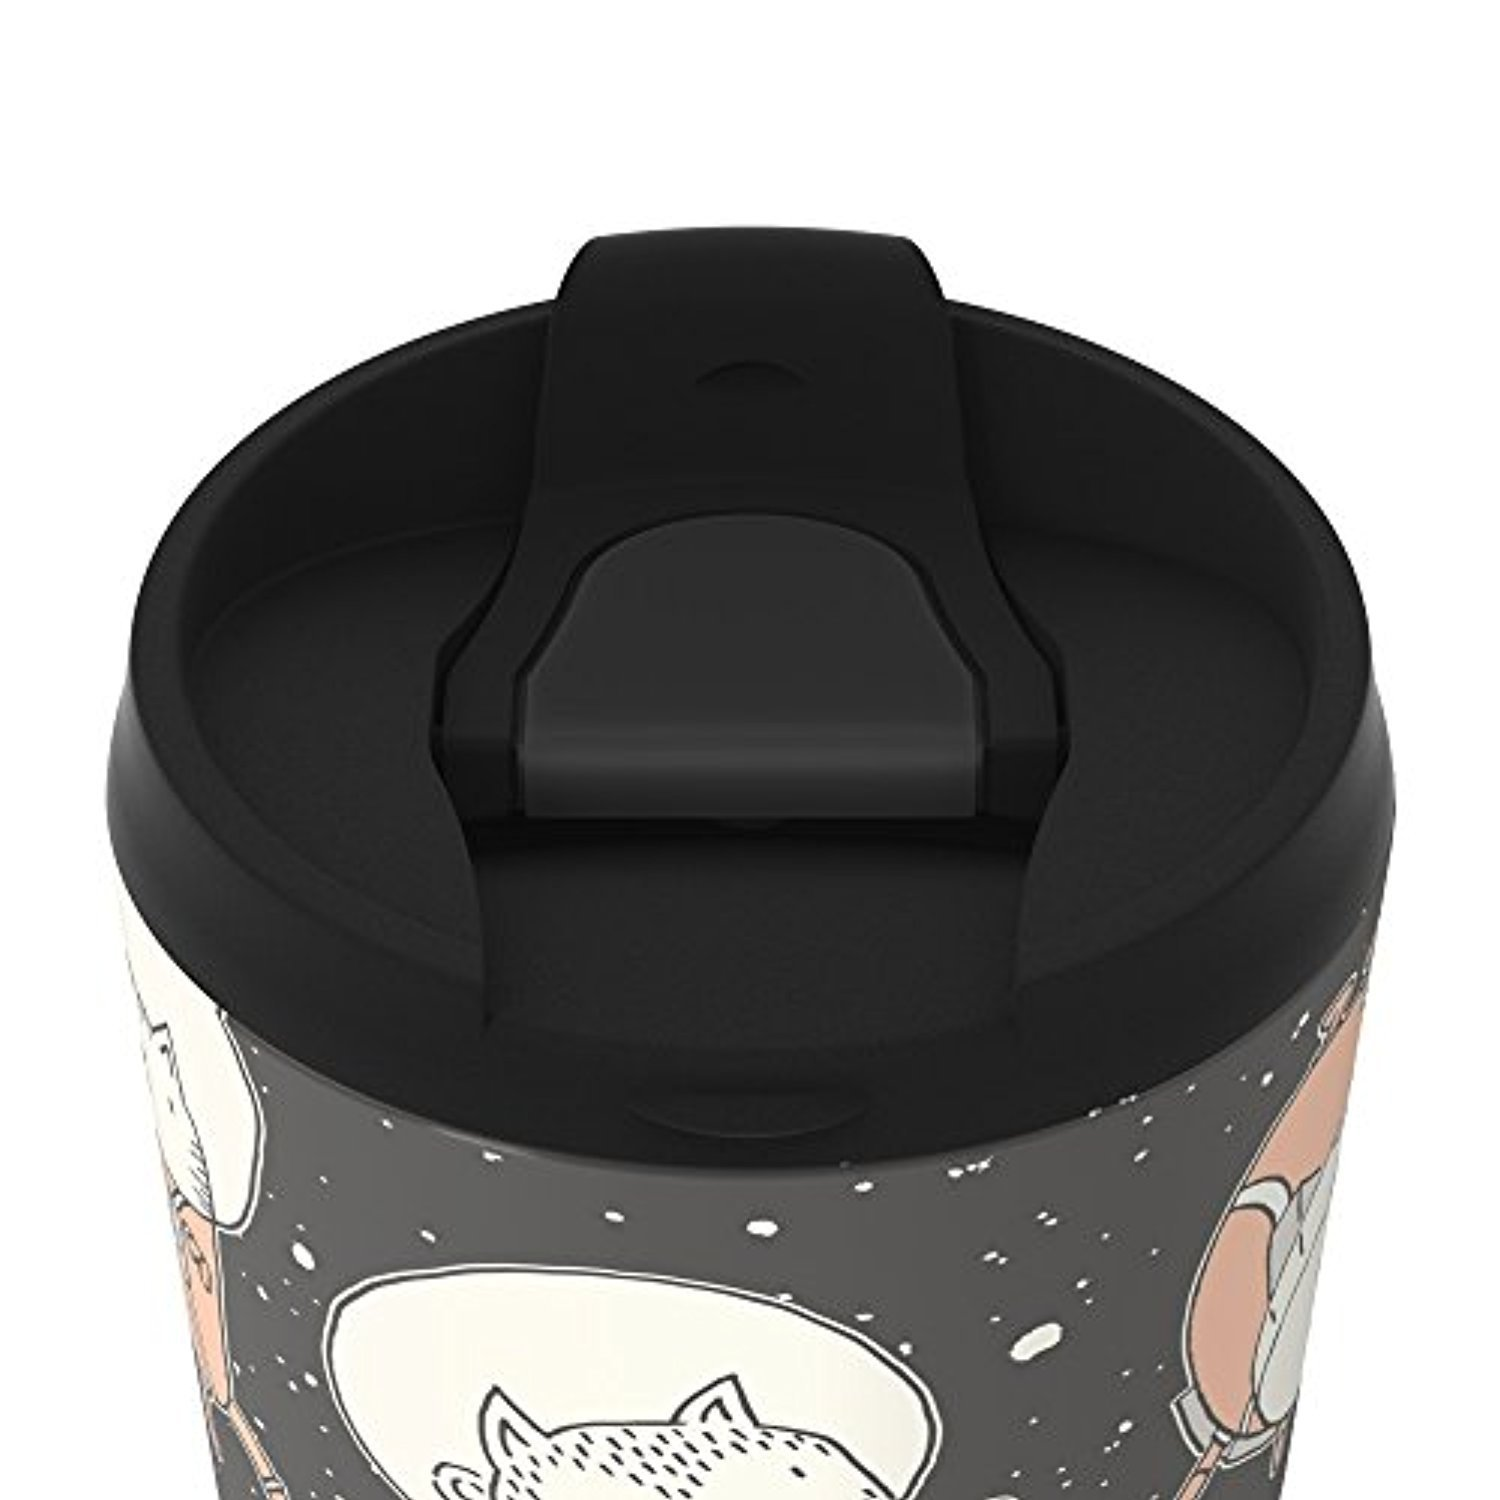 ◎送料込◎ Society6 Cat-Stronauts Metal Travel Mug 15 oz